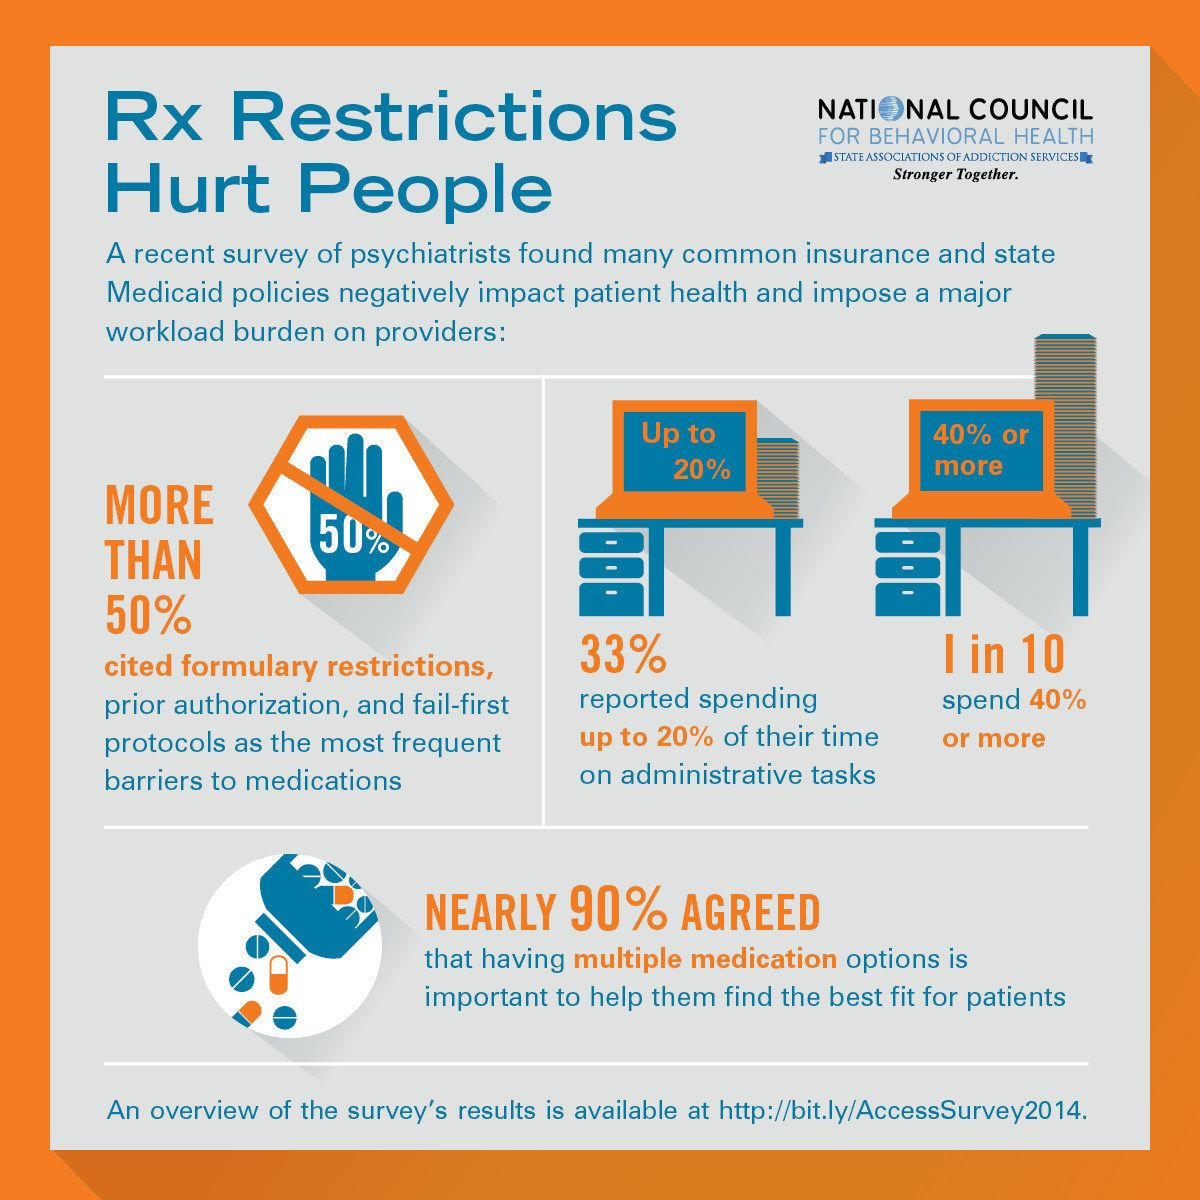 Medication Restrictions Significantly Affect Mental Health Treatment Outcomes -- WASHINGTON, Nov. 6, 2014 /PRNewswire-USNewswire/ --